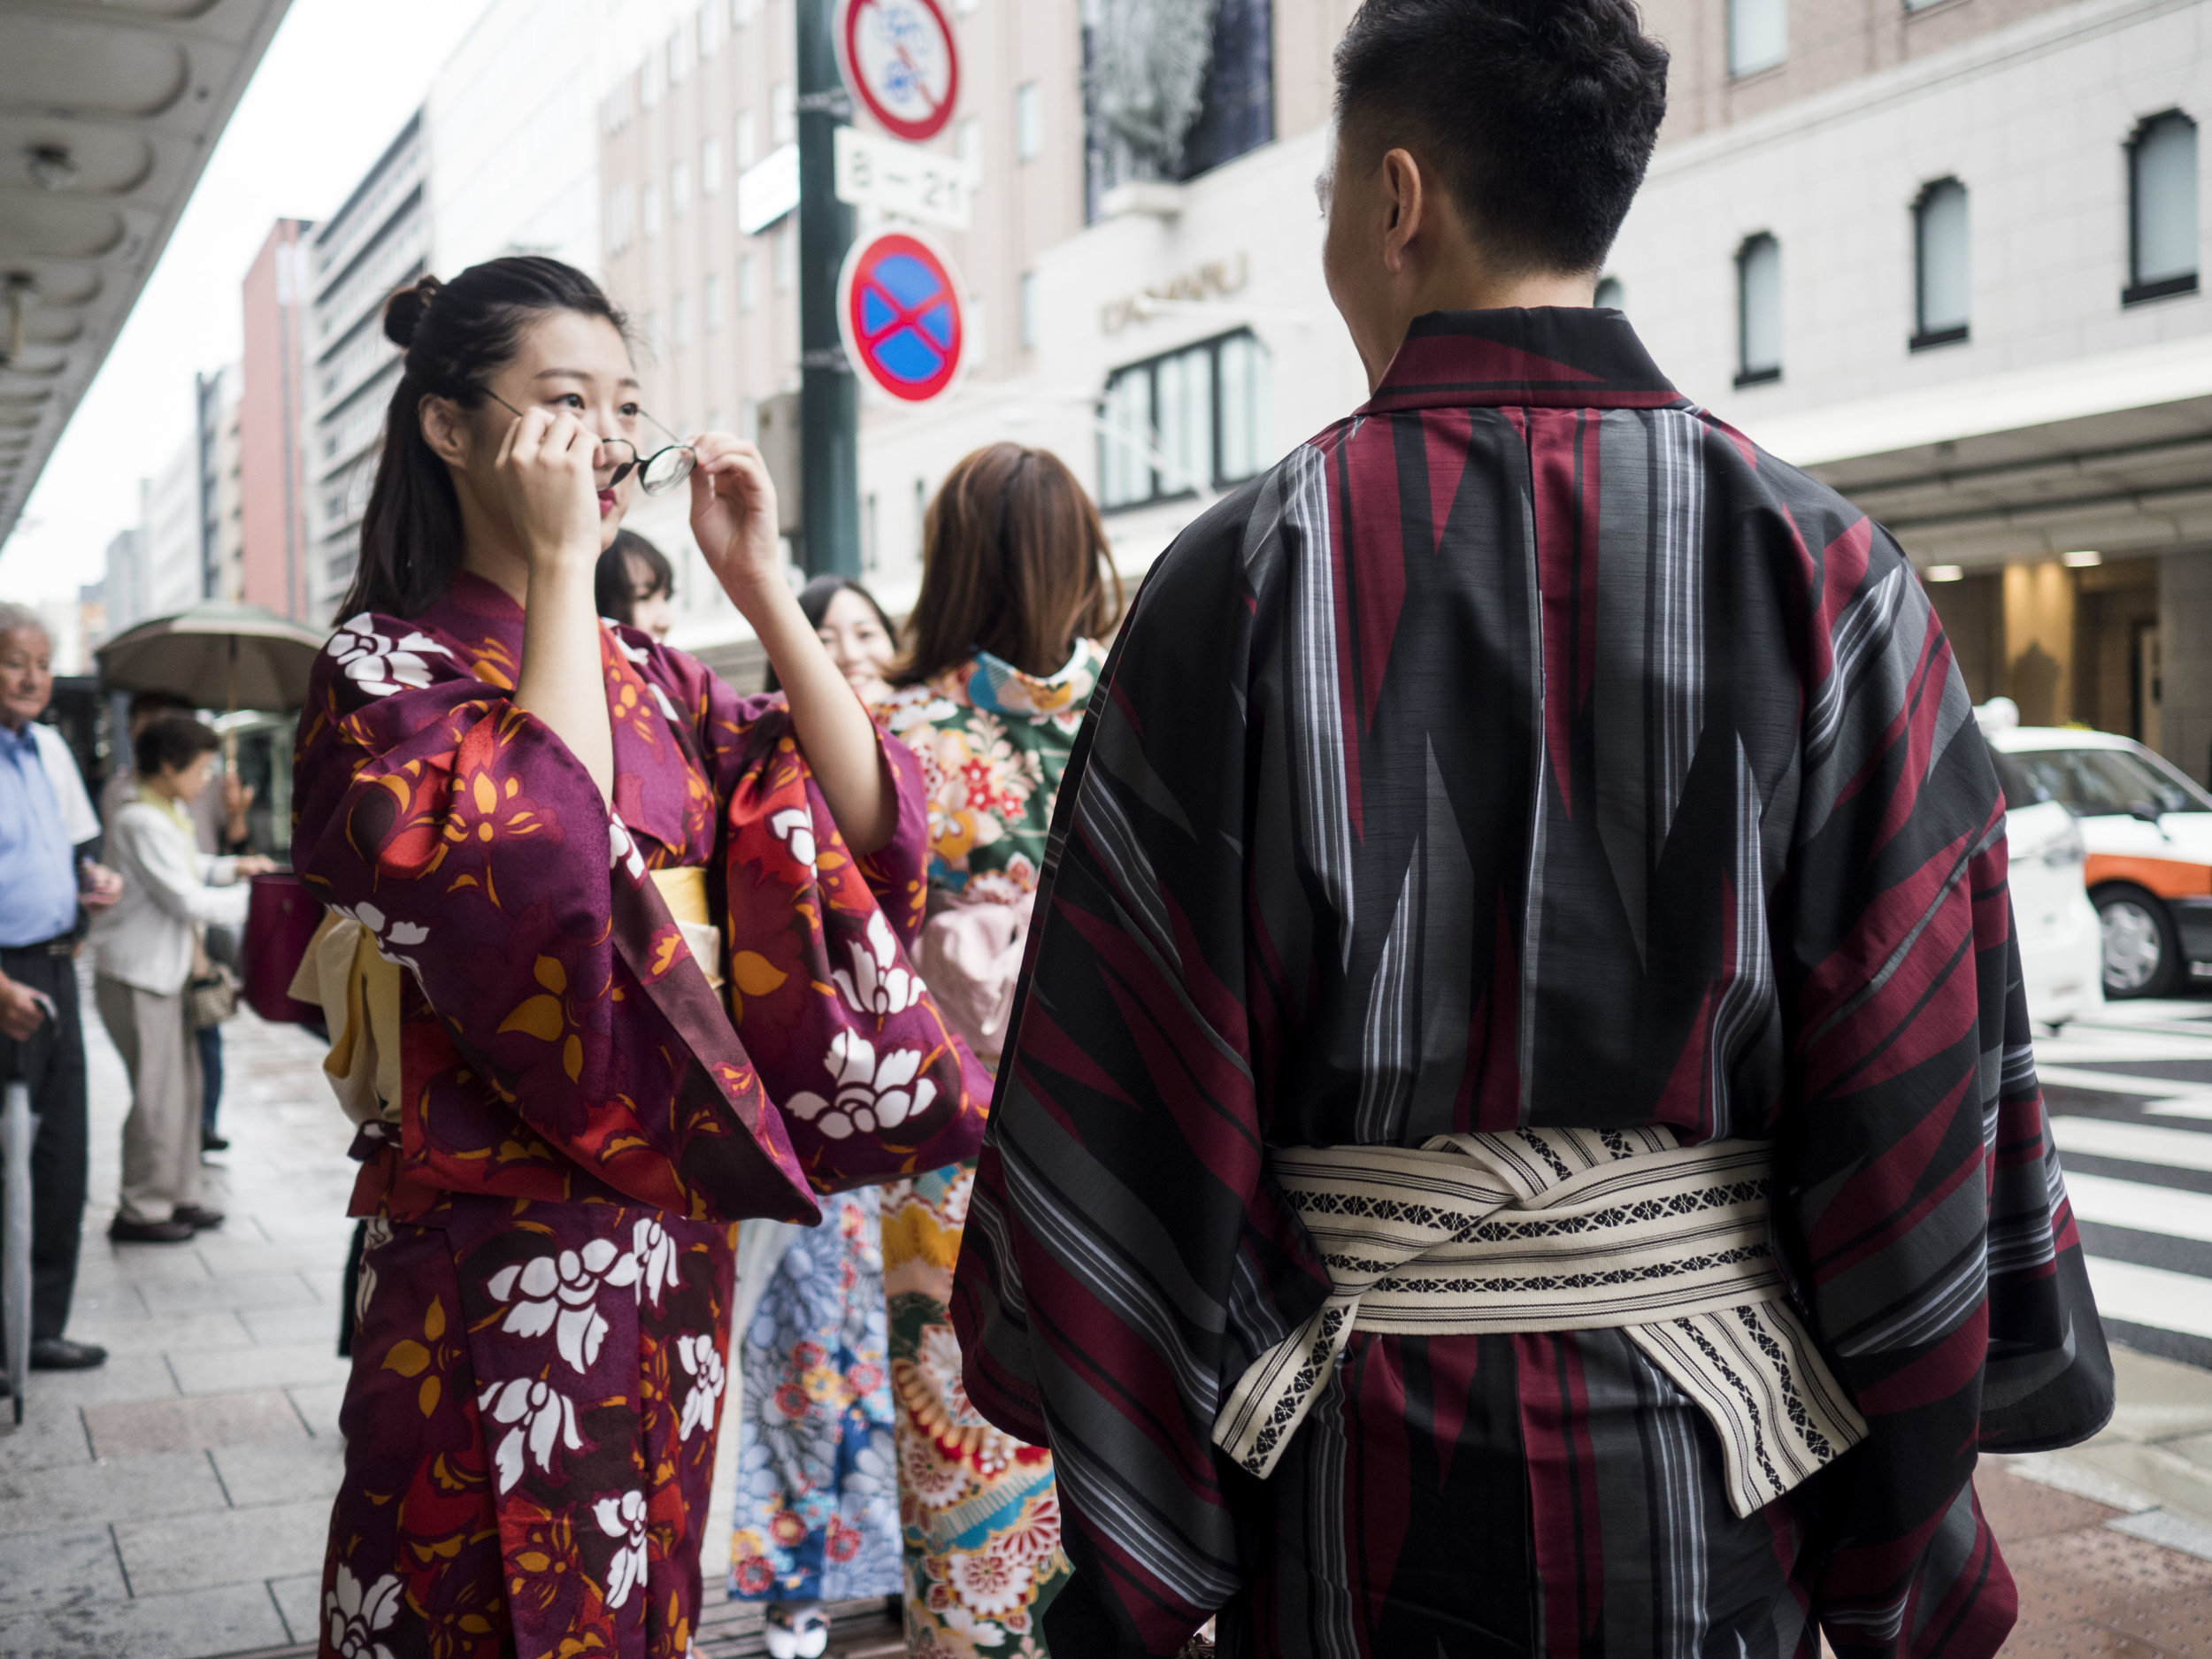 "In this image, the transition of DoF is as important as the point of perfect focus. The point of best focus is the back of the man's Kimono, but more important to the image is the woman facing us, who is not fully in or out of focus. She is caught well enough in the transition between the two. This use of transitional DoF is often referred to as ""Bokeh"" (see below) or the ""character"" of focus transition and blur and will vary by lens, aperture, distance and light."